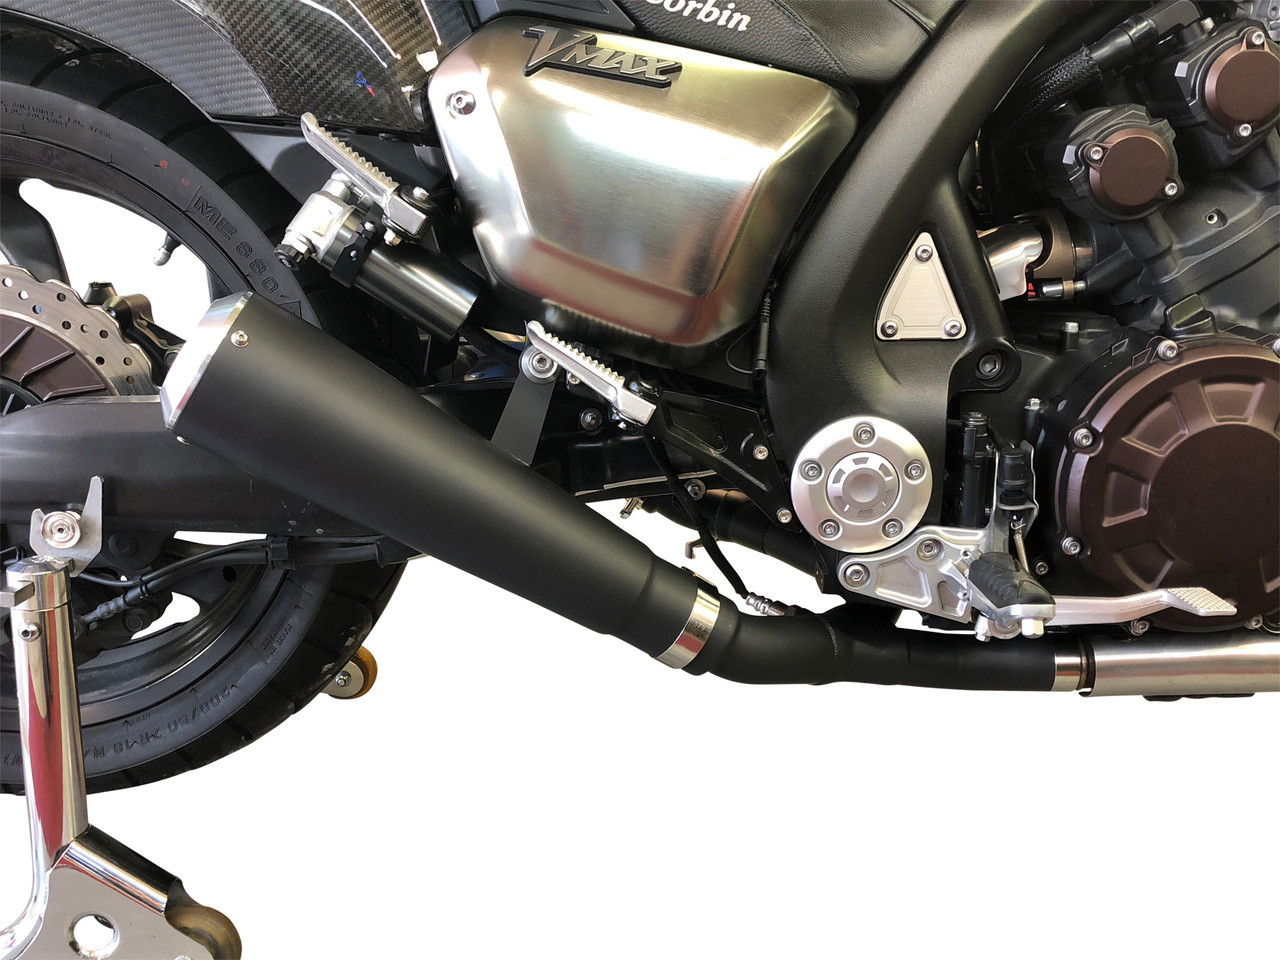 TwinStar 4-2 Slip On Exhaust System Ceramic Coated Black (09-19 All)